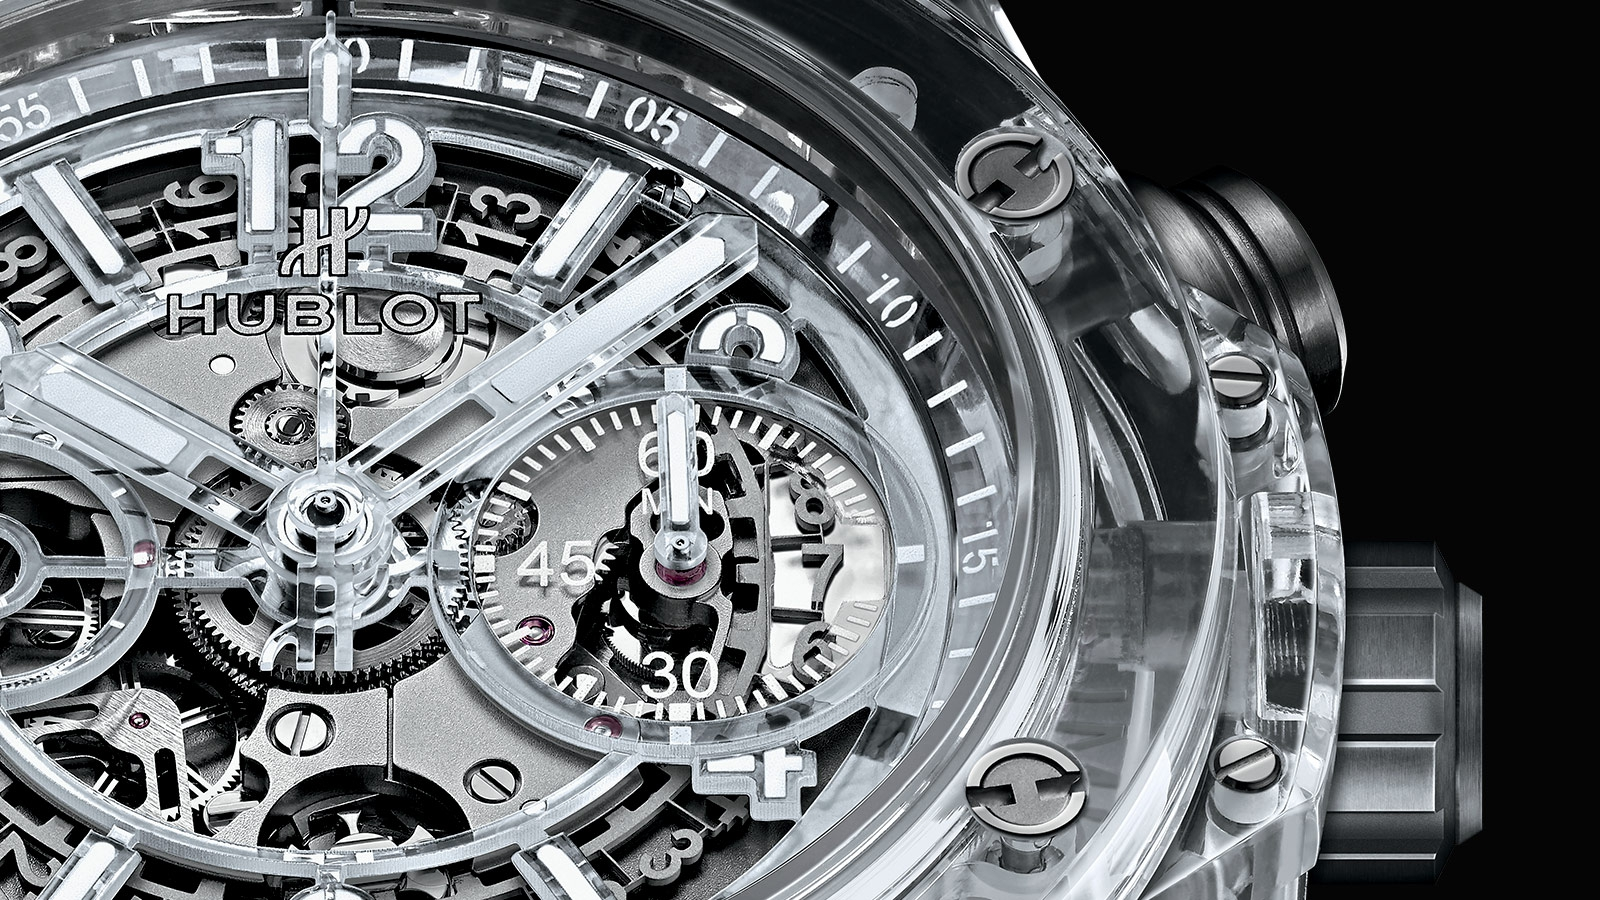 hublot created this incredible transparent watch using blocks of sapphire